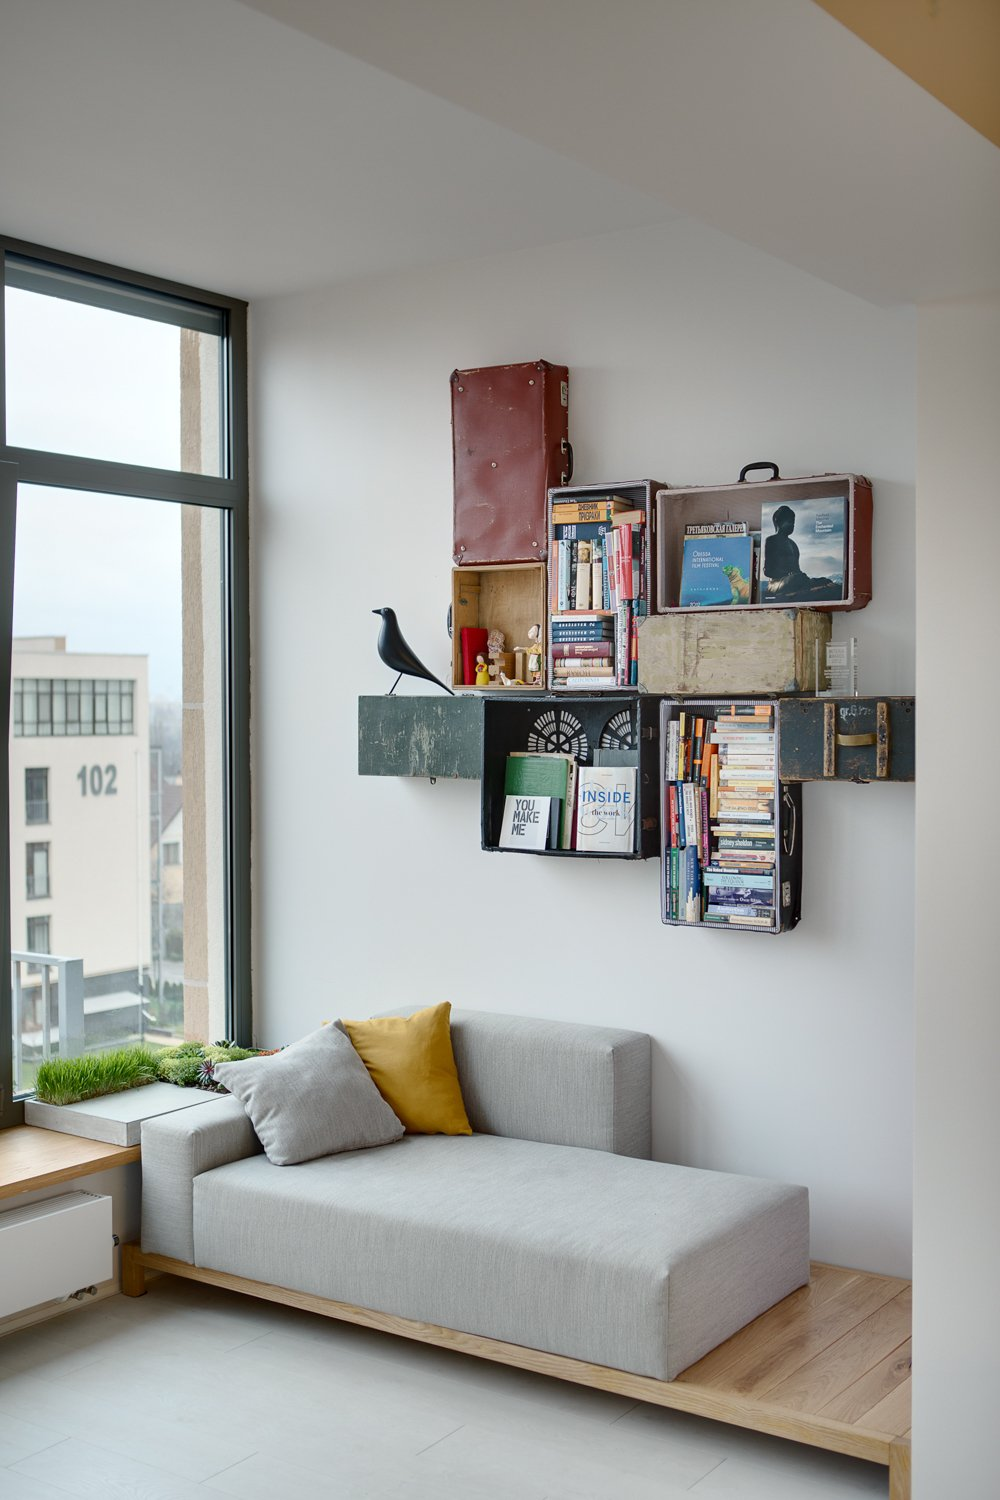 Reading nook with a unique bookshelf installation